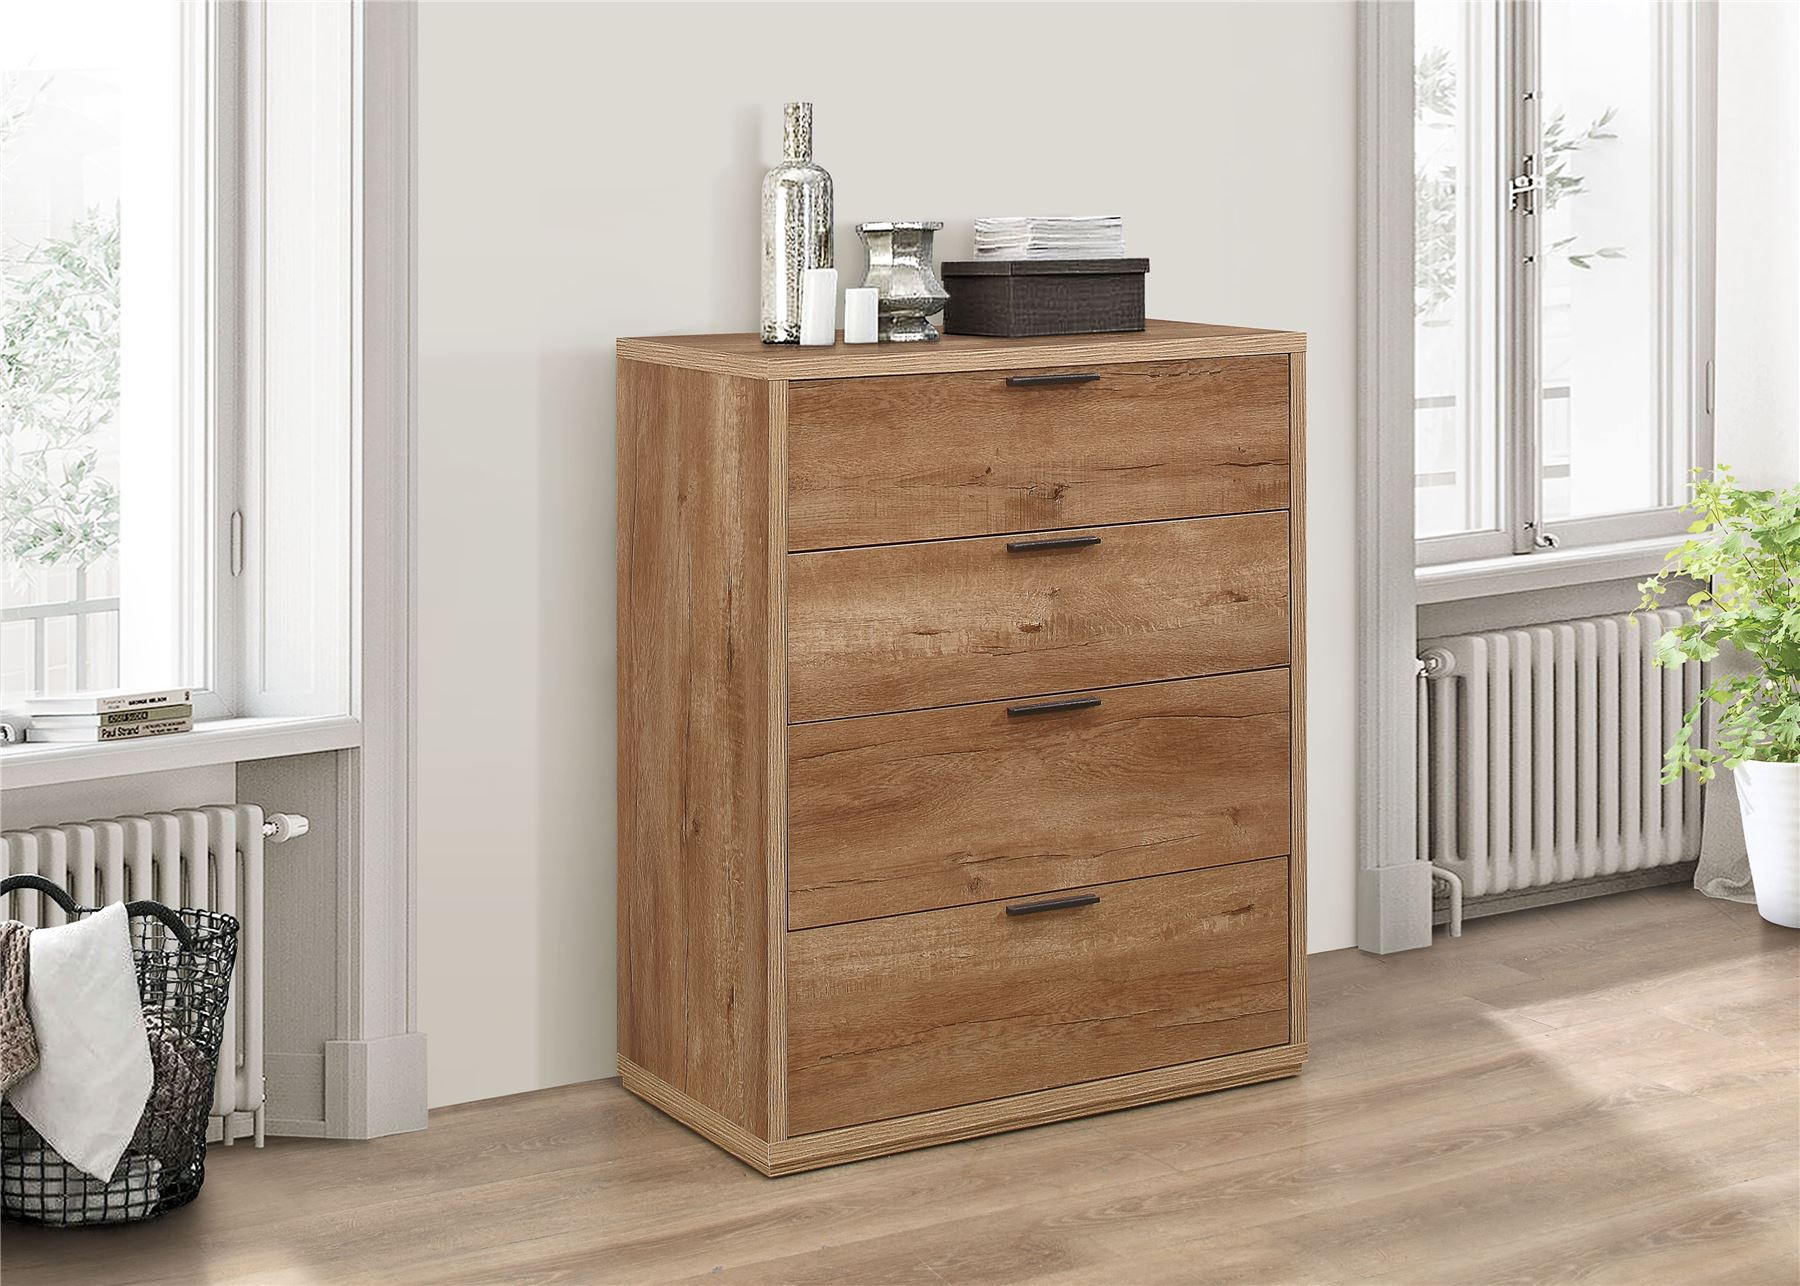 Birlea Stockwell Rustic Oak Chest of 4 Drawers Urban Industrial design